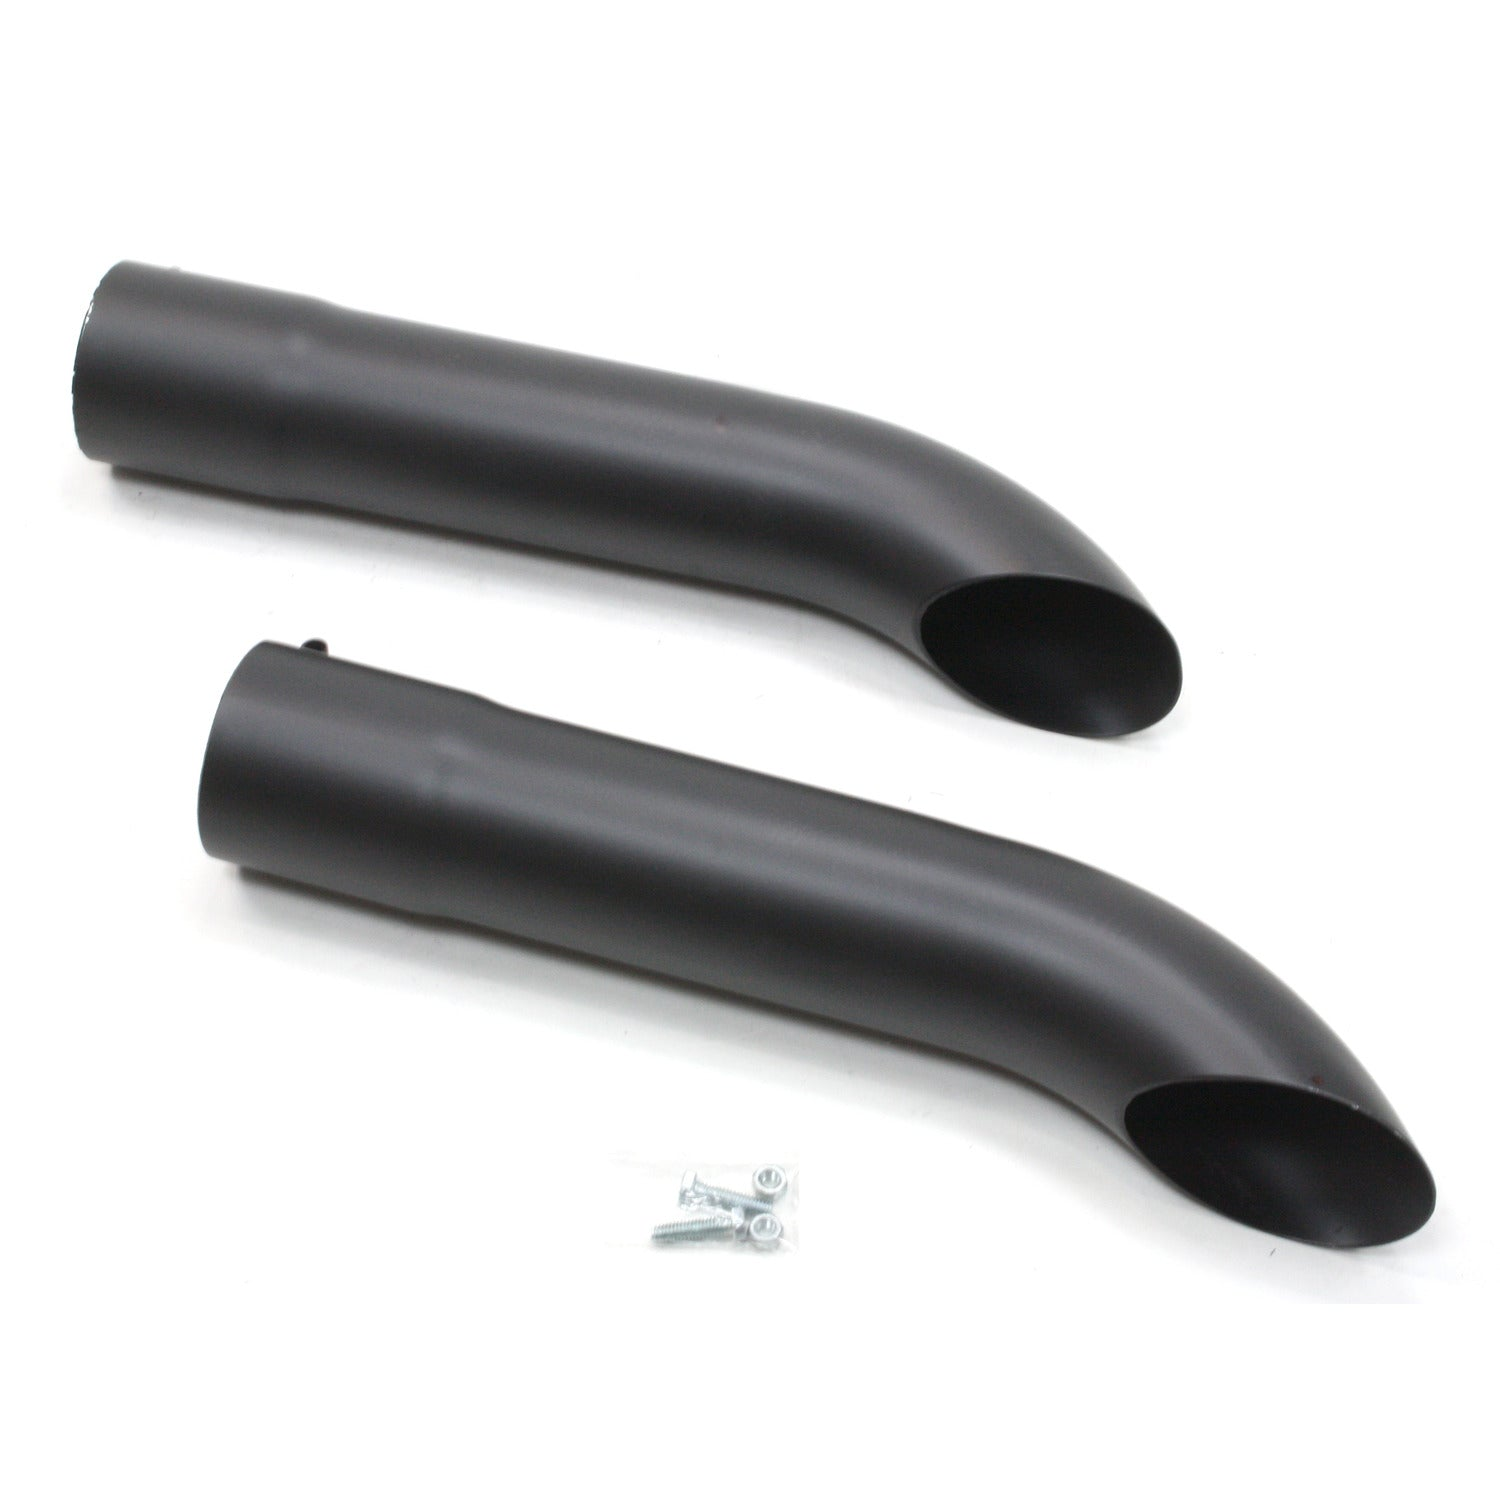 Patriot Exhaust H3817-B Exhaust Turnout Inlet/Outlet 3 1/2 Inch Length 20 Inch Pair Hi-Temp Black Coating